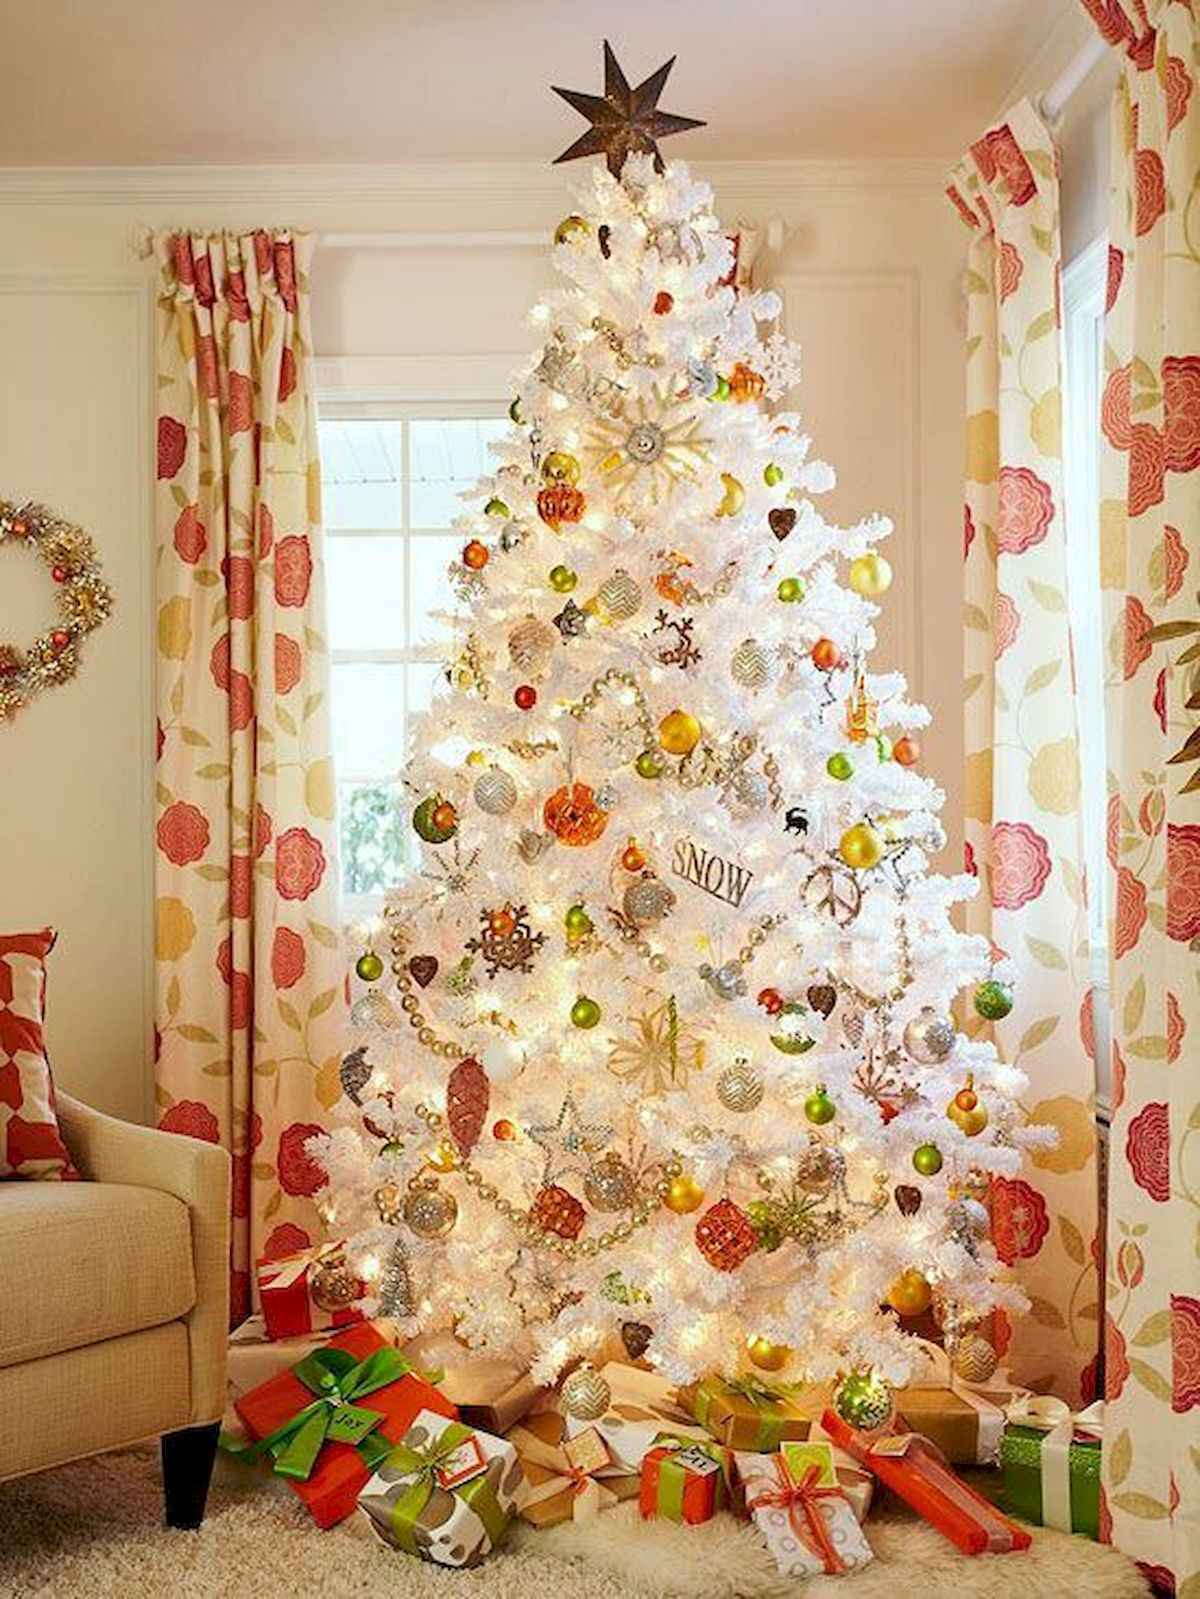 60 awesome christmas tree decorations ideas (32)